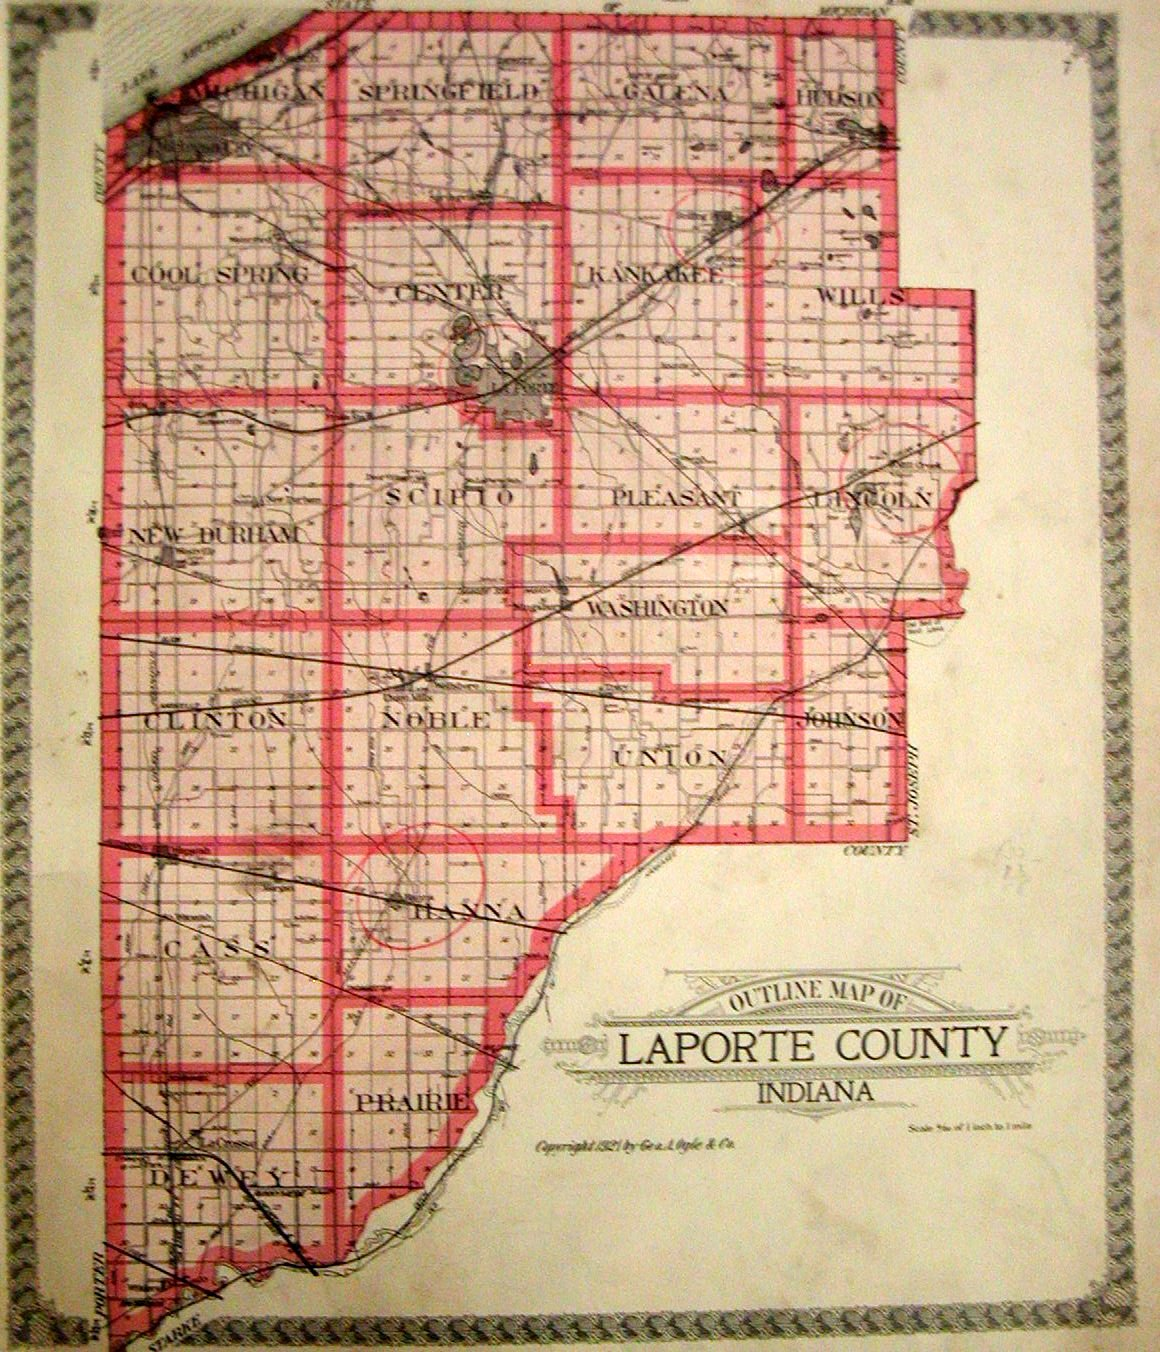 La Porte County Indiana Township Maps